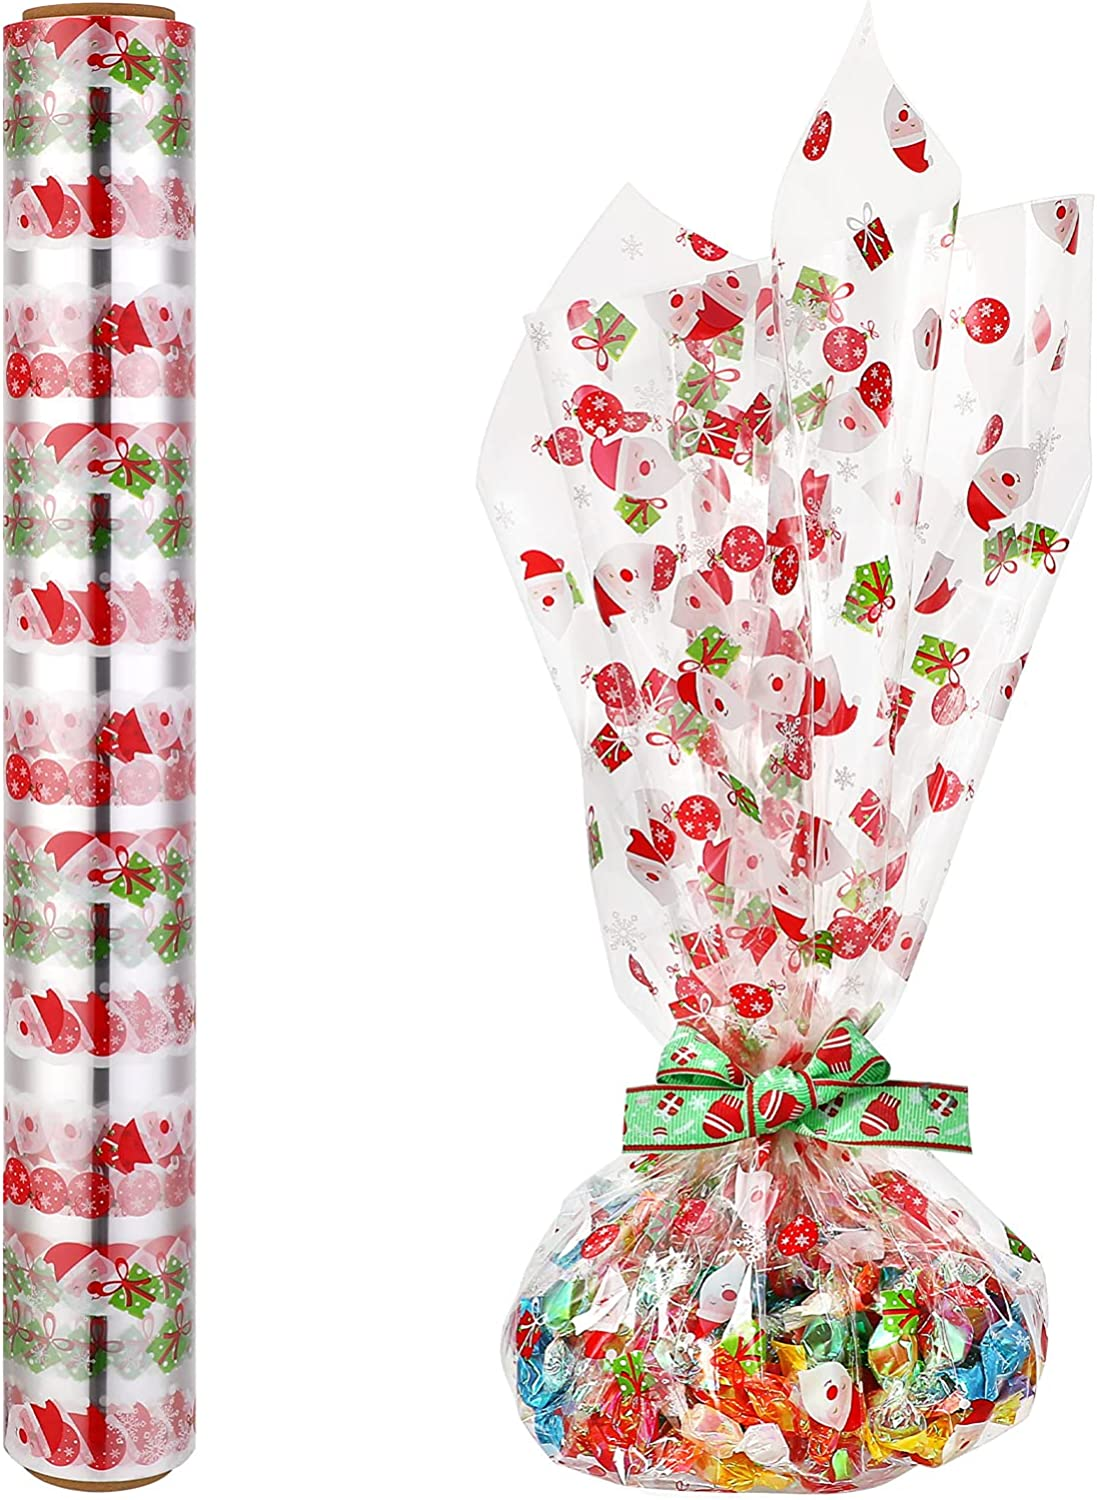 Kisangel 1pc Cellophane Wrap Roll Gift Clear Max New color 89% OFF Paper Wr